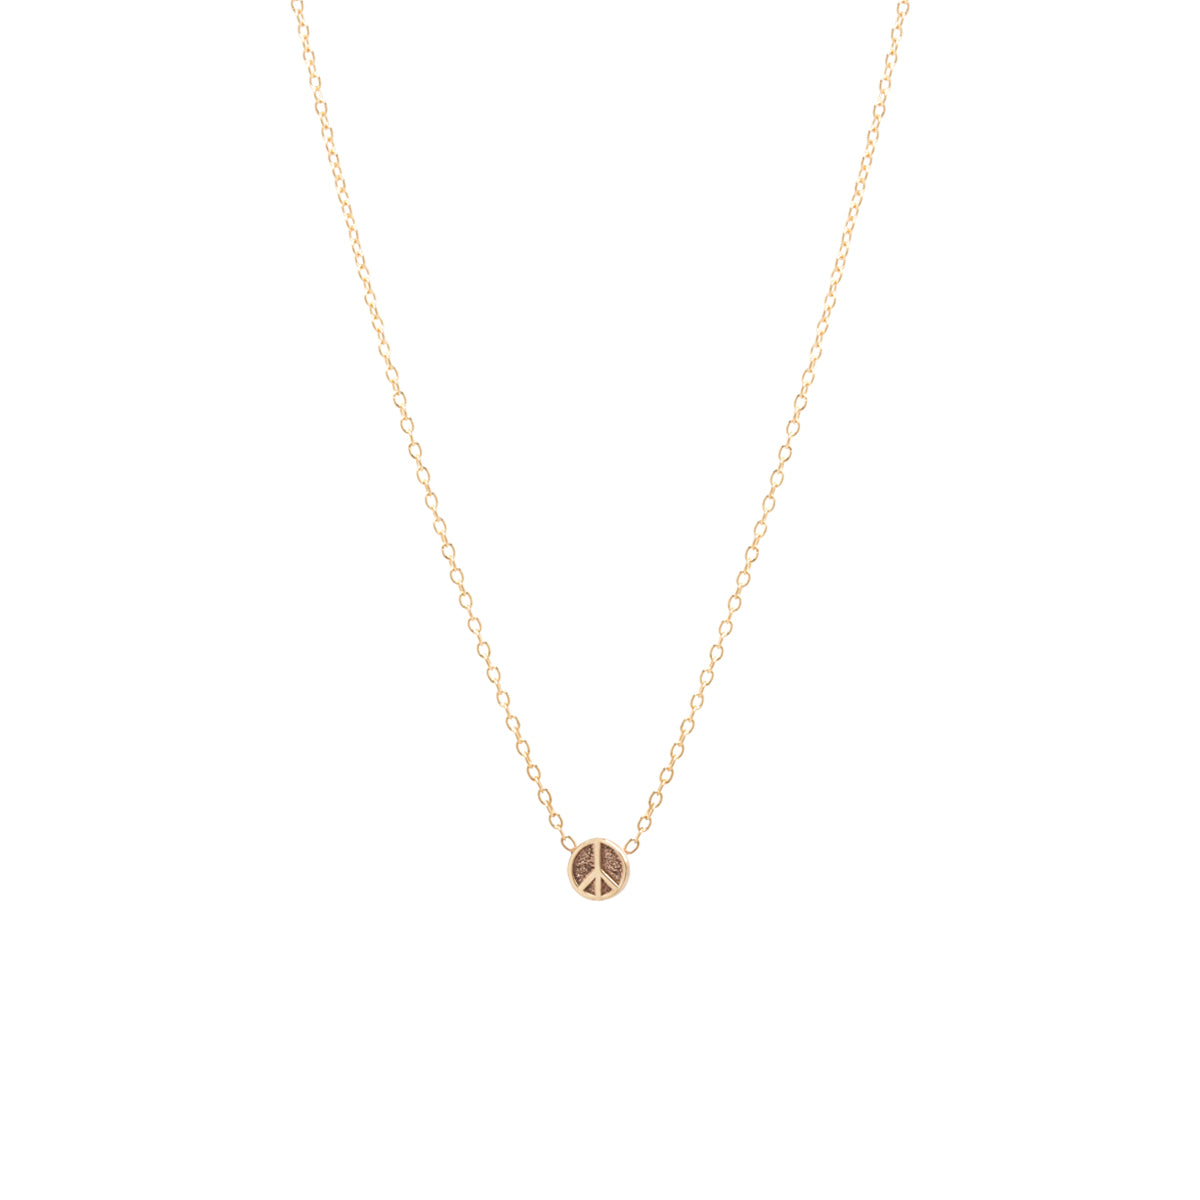 14k itty bitty peace sign necklace